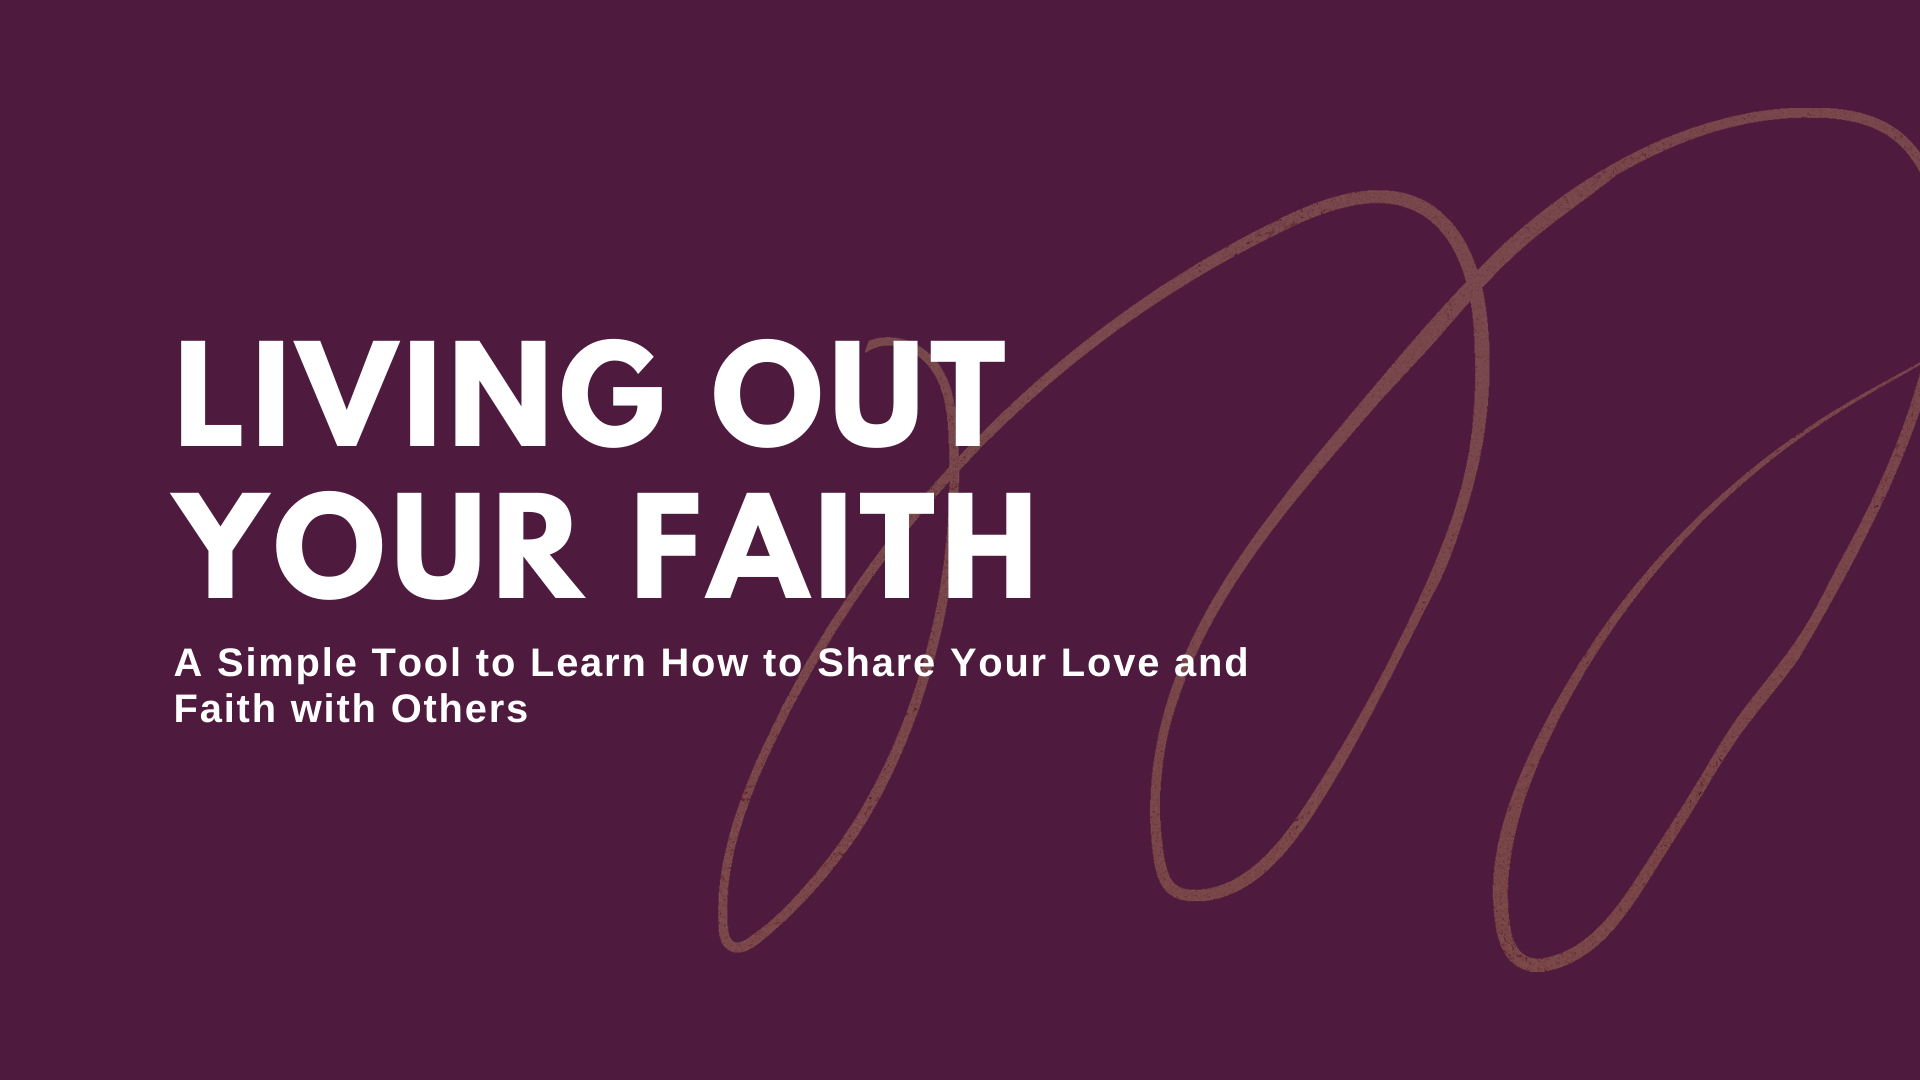 living out your faith (1) image